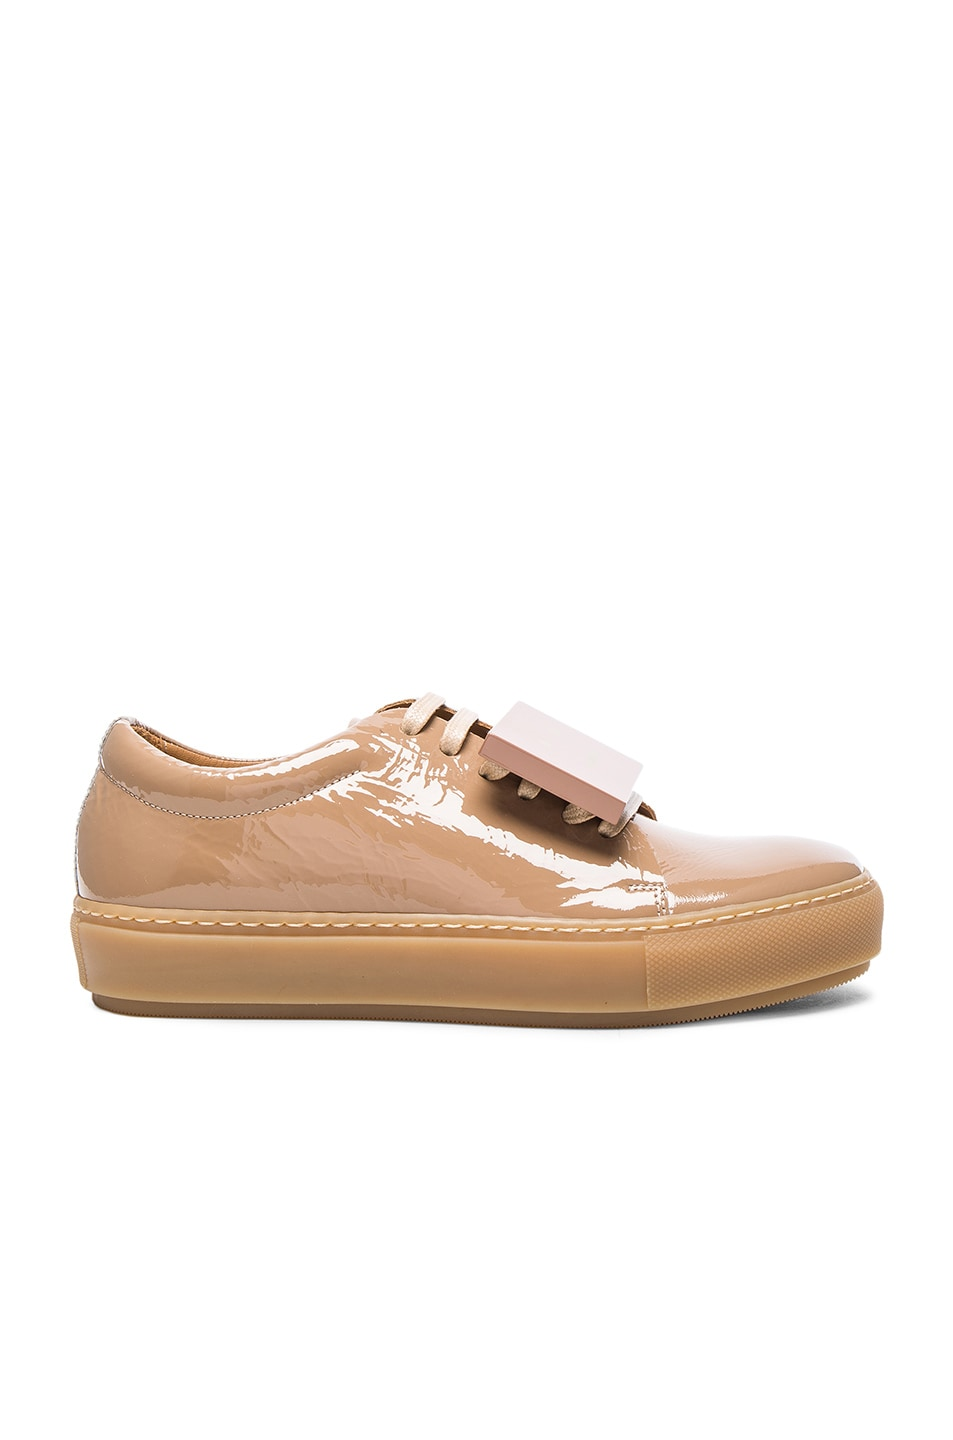 Image 1 of Acne Studios Adriana Patent Leather Sneakers in Beige